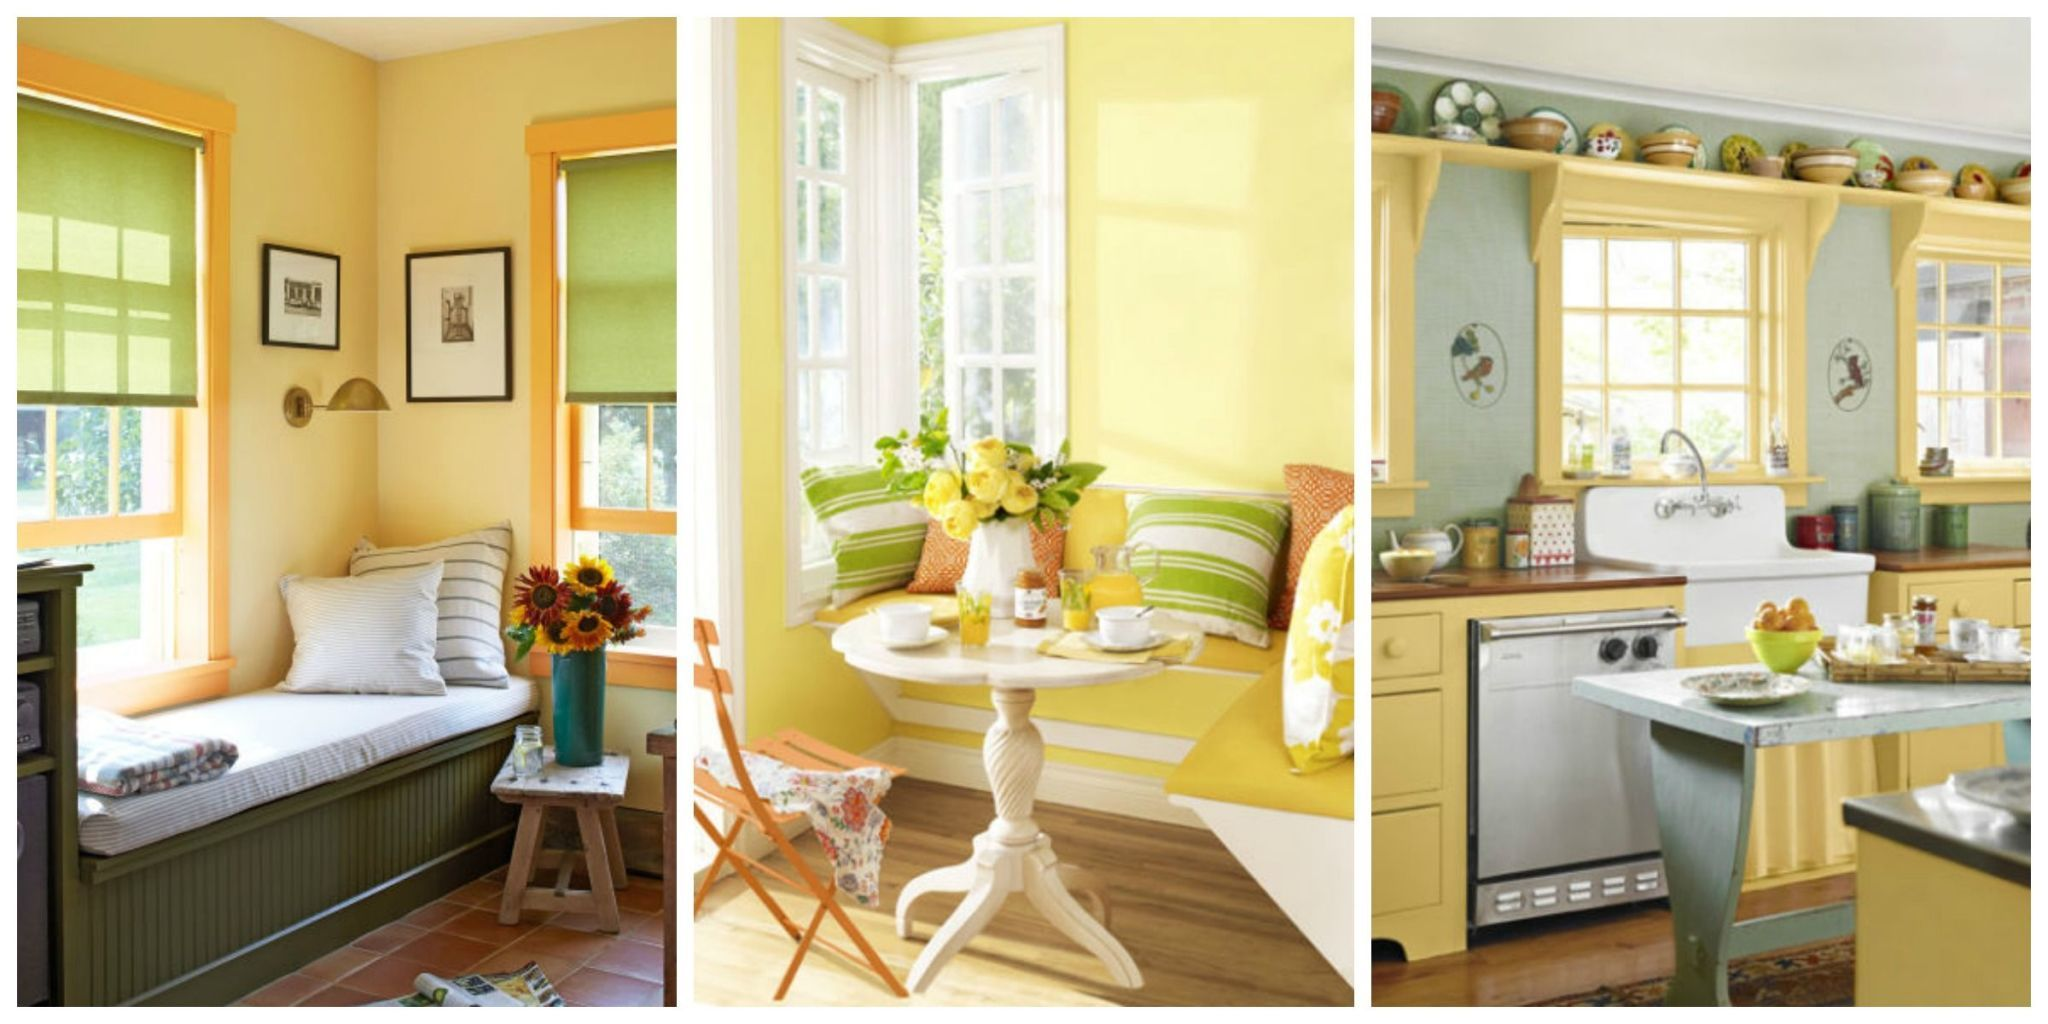 Genial Whether A Swath Of Canary Or A Hint Of Golden, Bring The Sunshine Inside  With Yellow Wall Paint, Decor, And Accents.